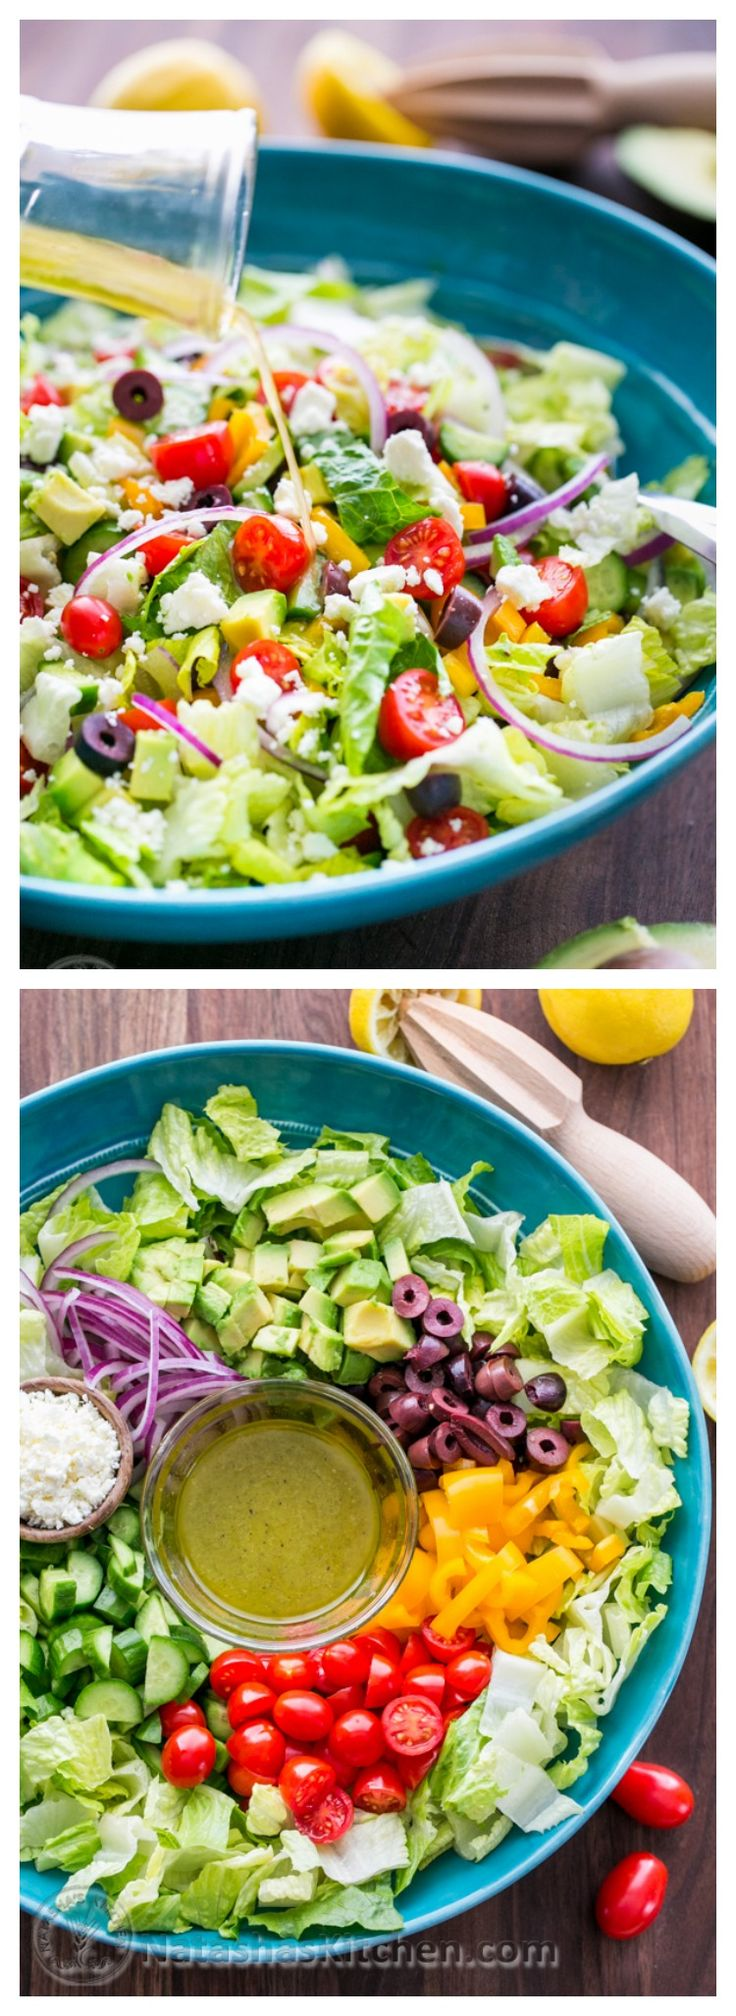 Healthy Eating: Greek Salad with Zesty Lemon Dressing | @NatashasKitchen